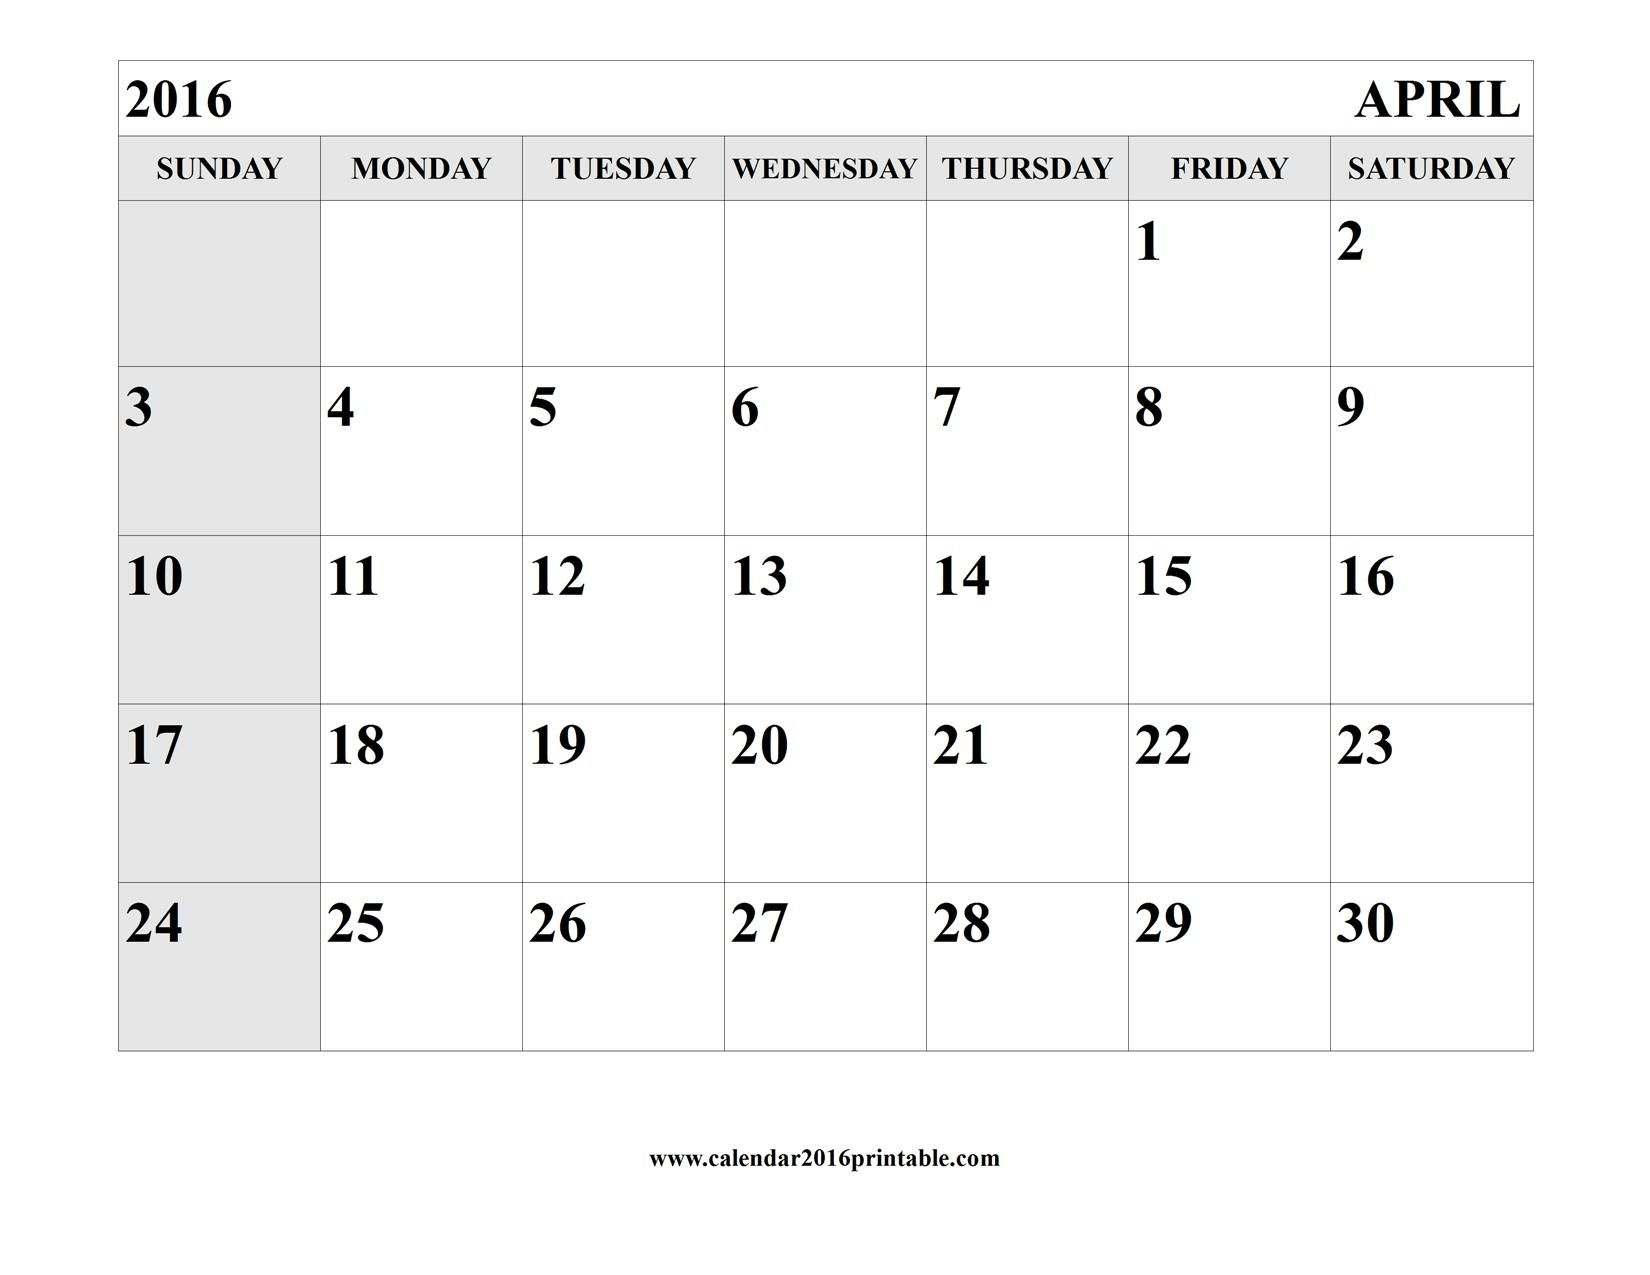 April 2016 Calendar Printable Template | Calendar Template